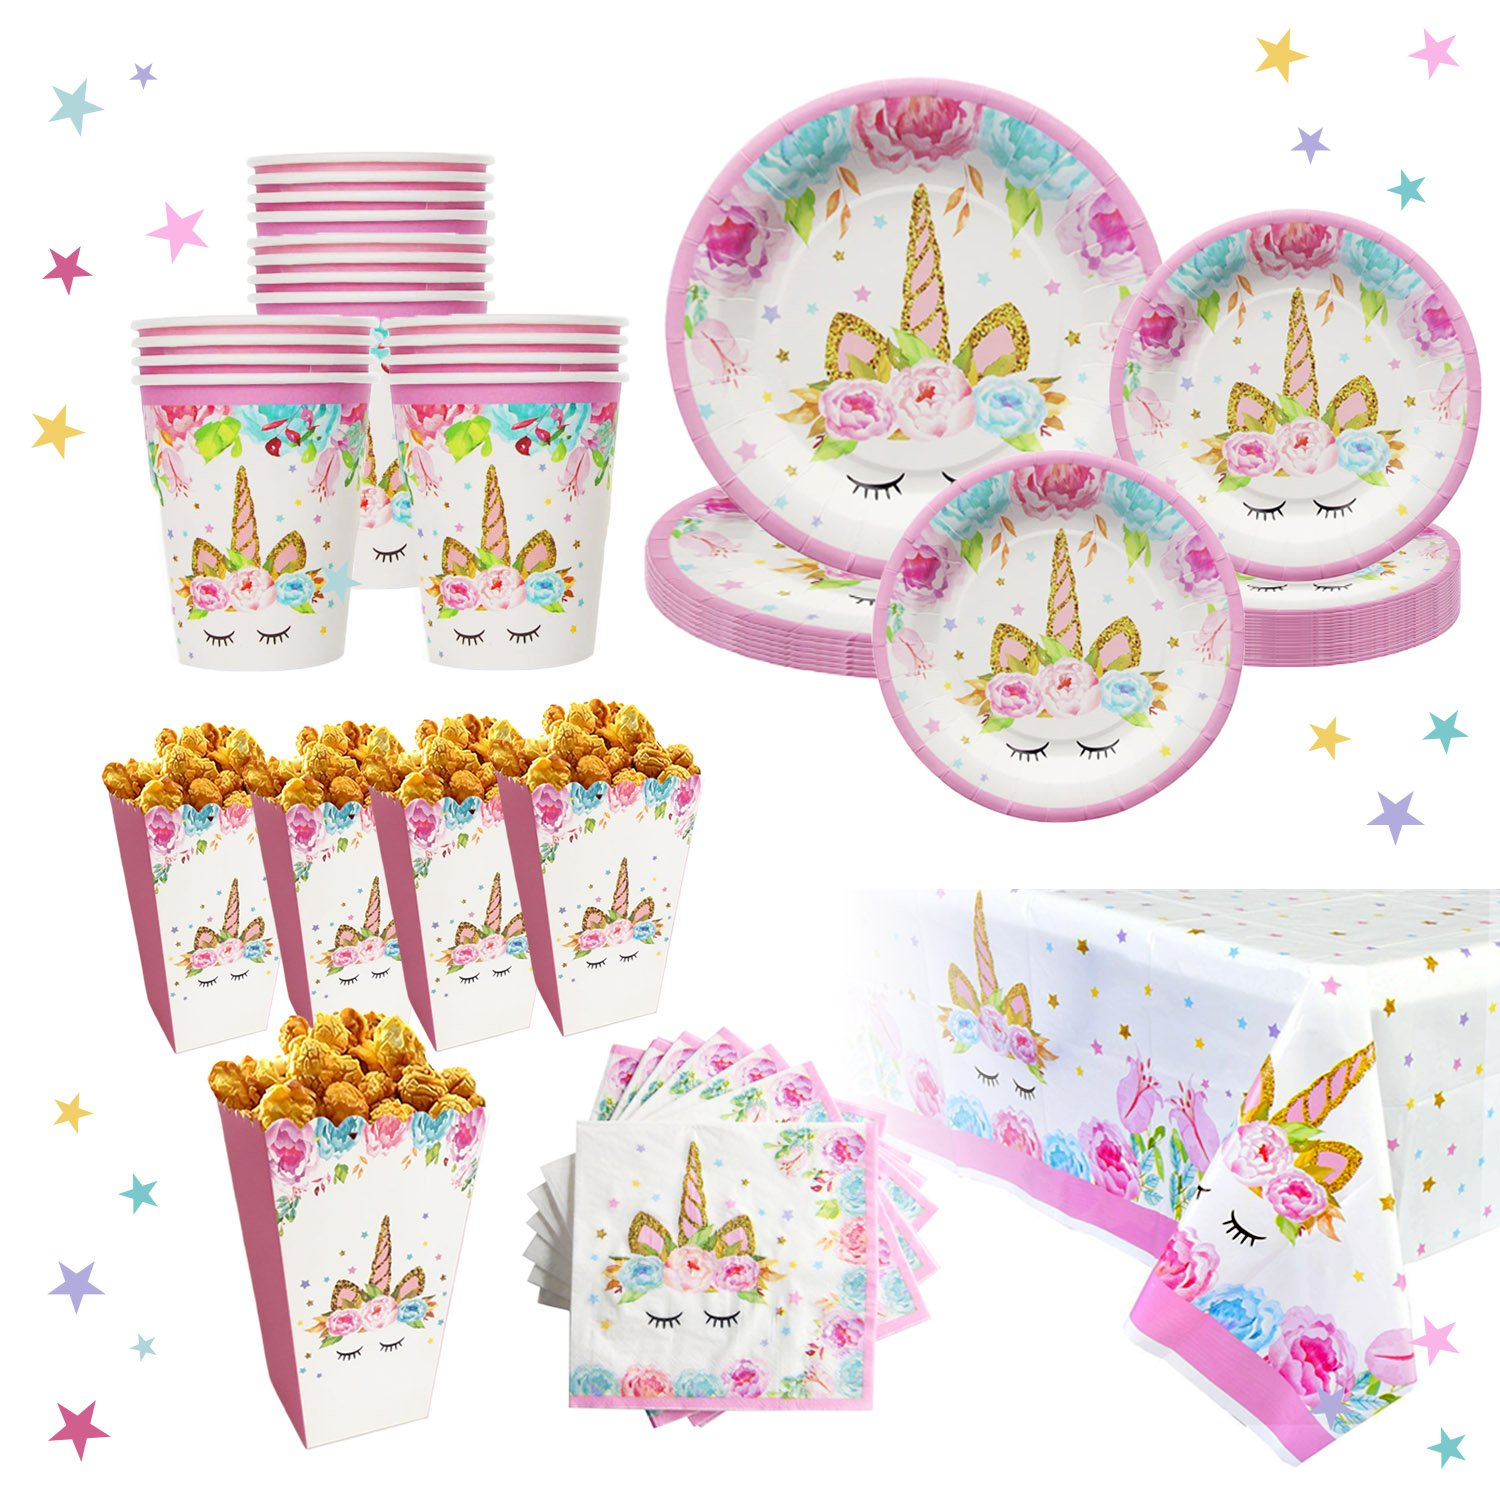 Unicorn Party Supplies Set for 16 | Plates, Cups,Table Cloth, Napkins, Popcorn Boxes Kit | Diposable Tableware | Magical Decorations for Girls or Kid's Birthday Parties, Baby shower by Bestus by Bestus